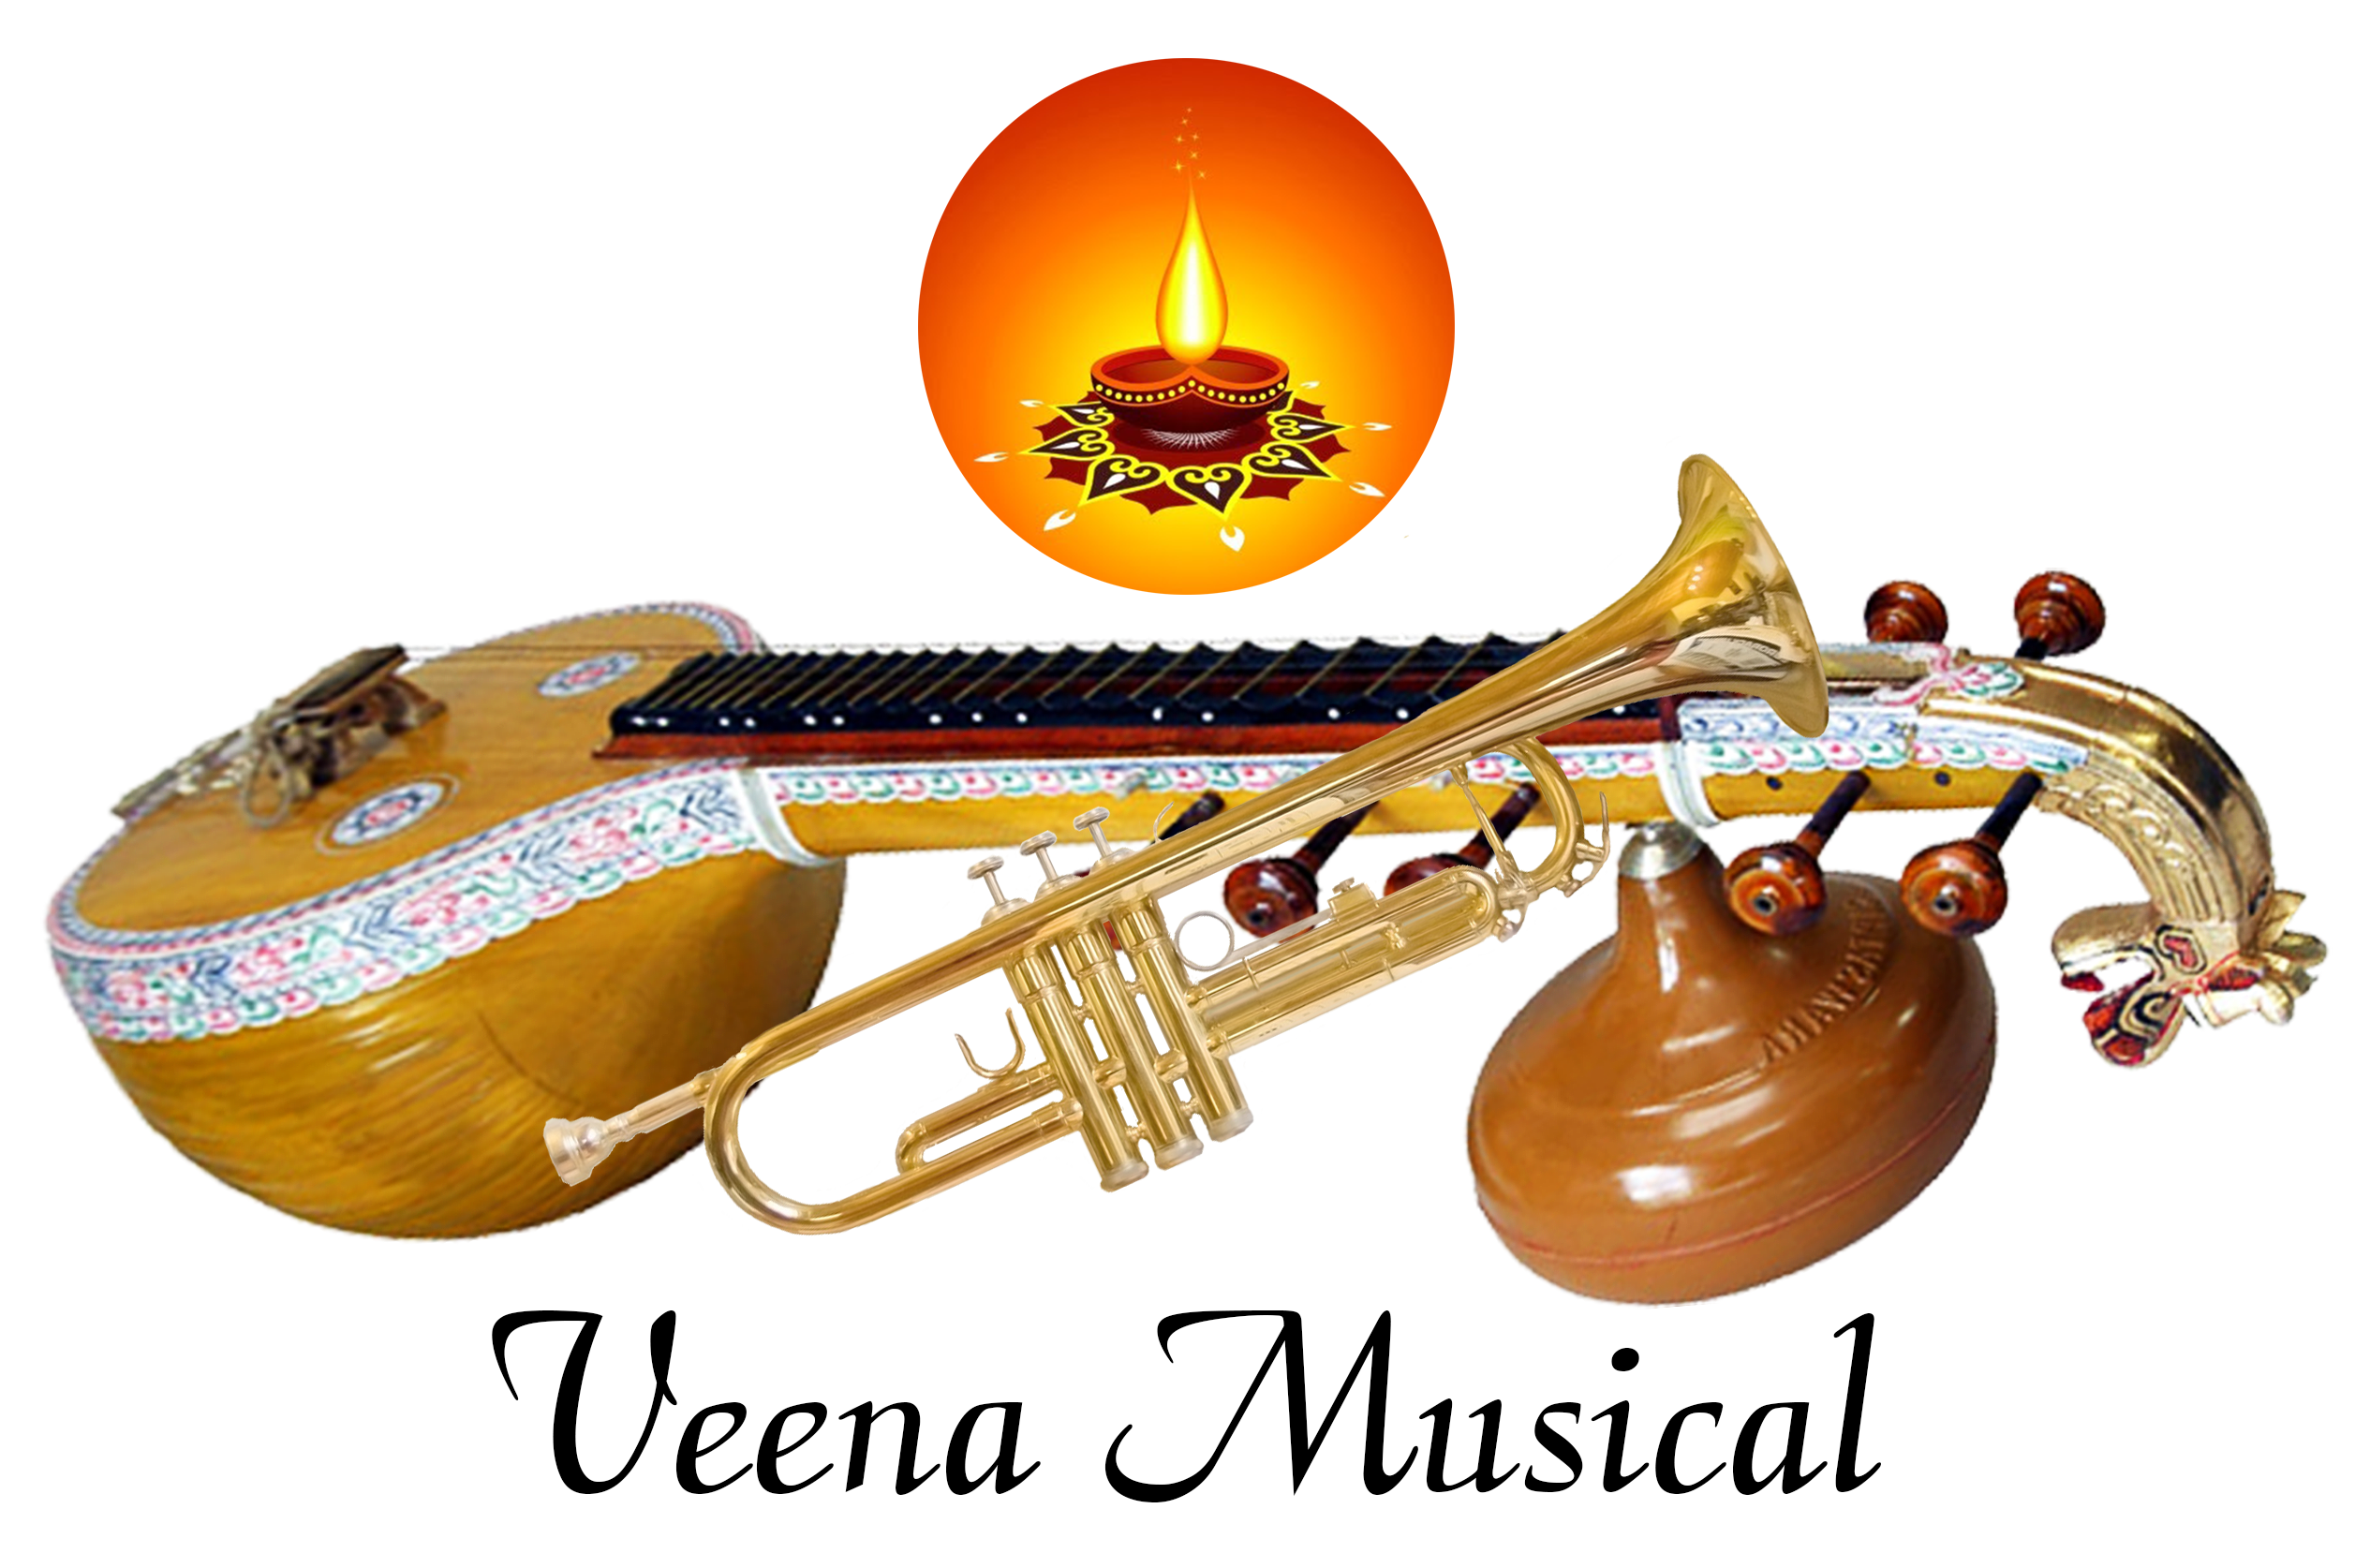 Veena musical about us. Piano clipart keyboard casio